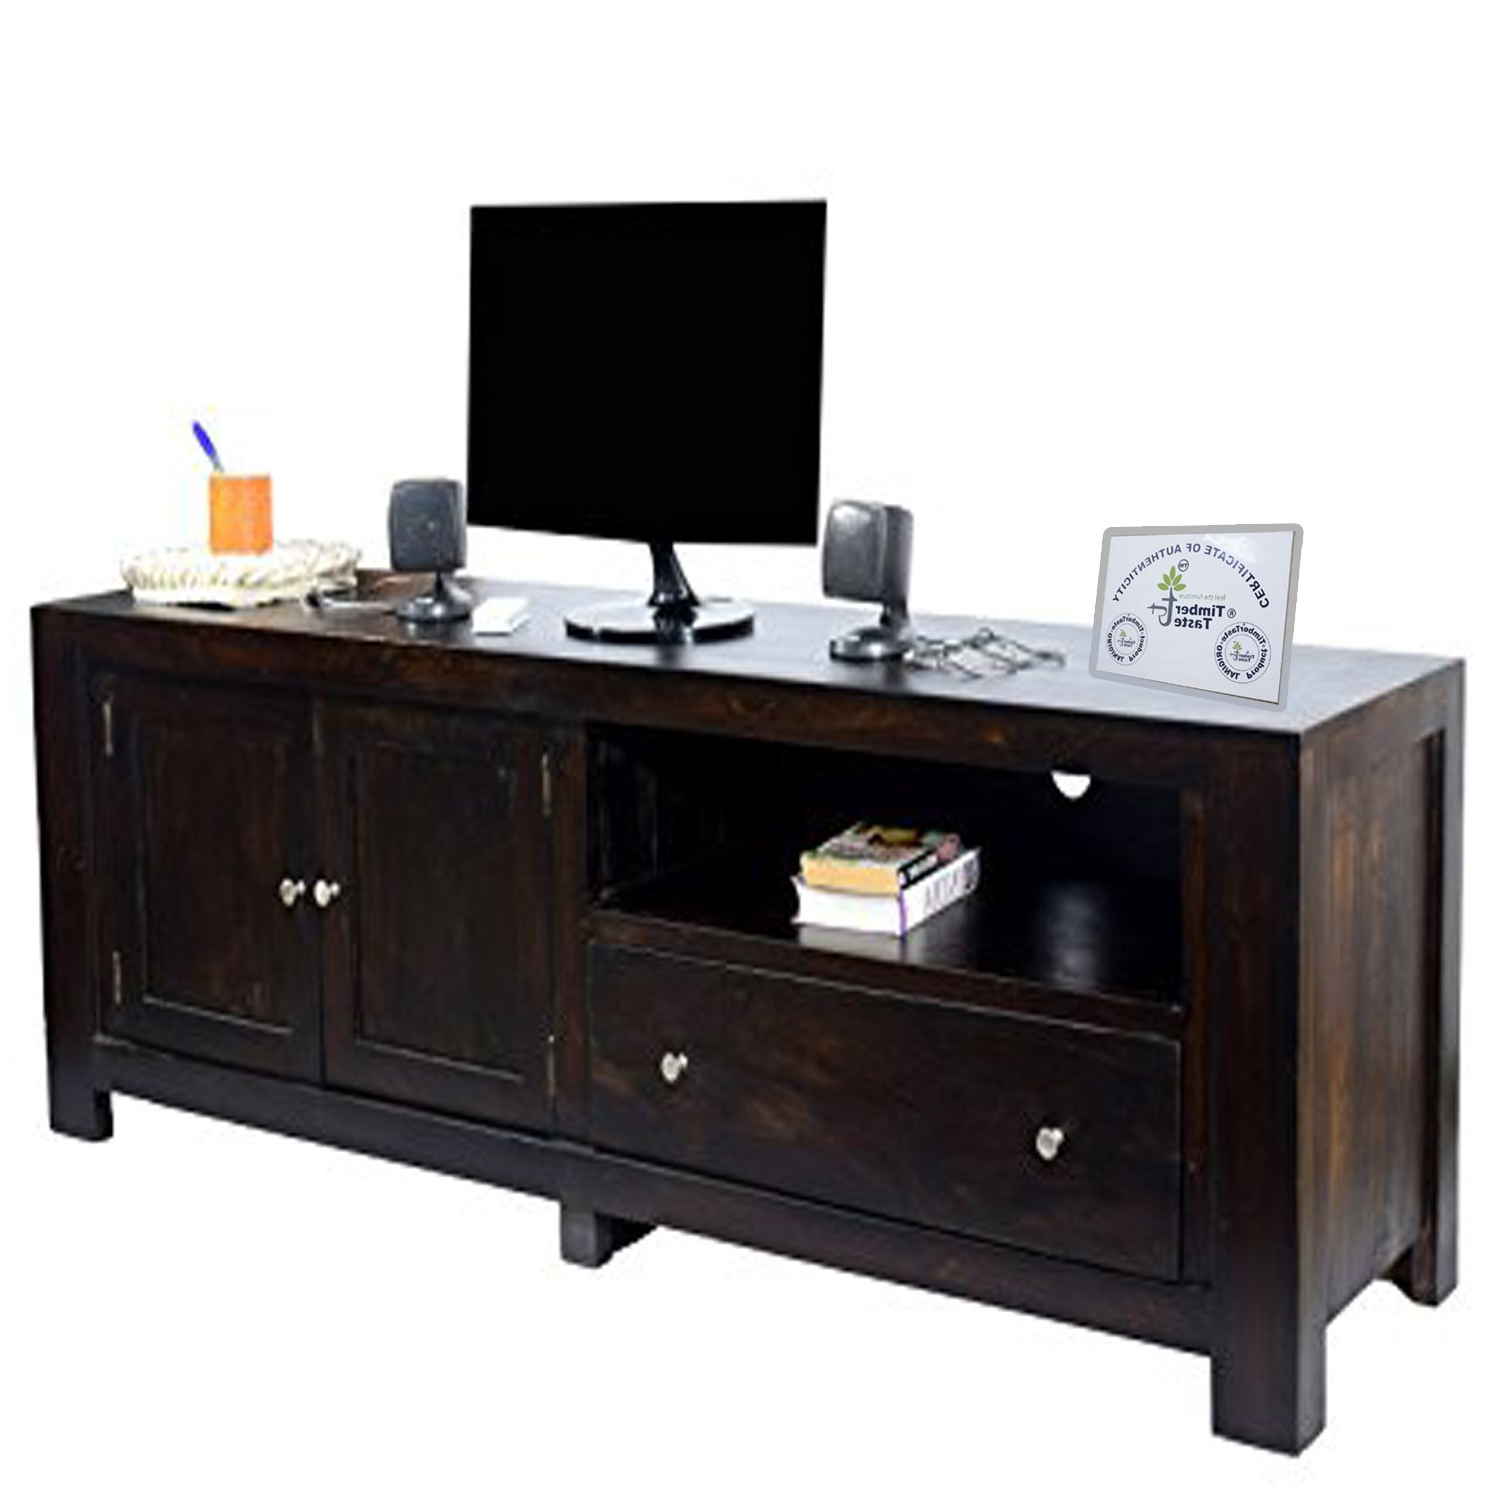 Most Recent Daintree New Cuba Tv Unit Cabinet (Lacquer Finish, Dark Walnut Throughout Daintree Tv Stands (Gallery 18 of 20)